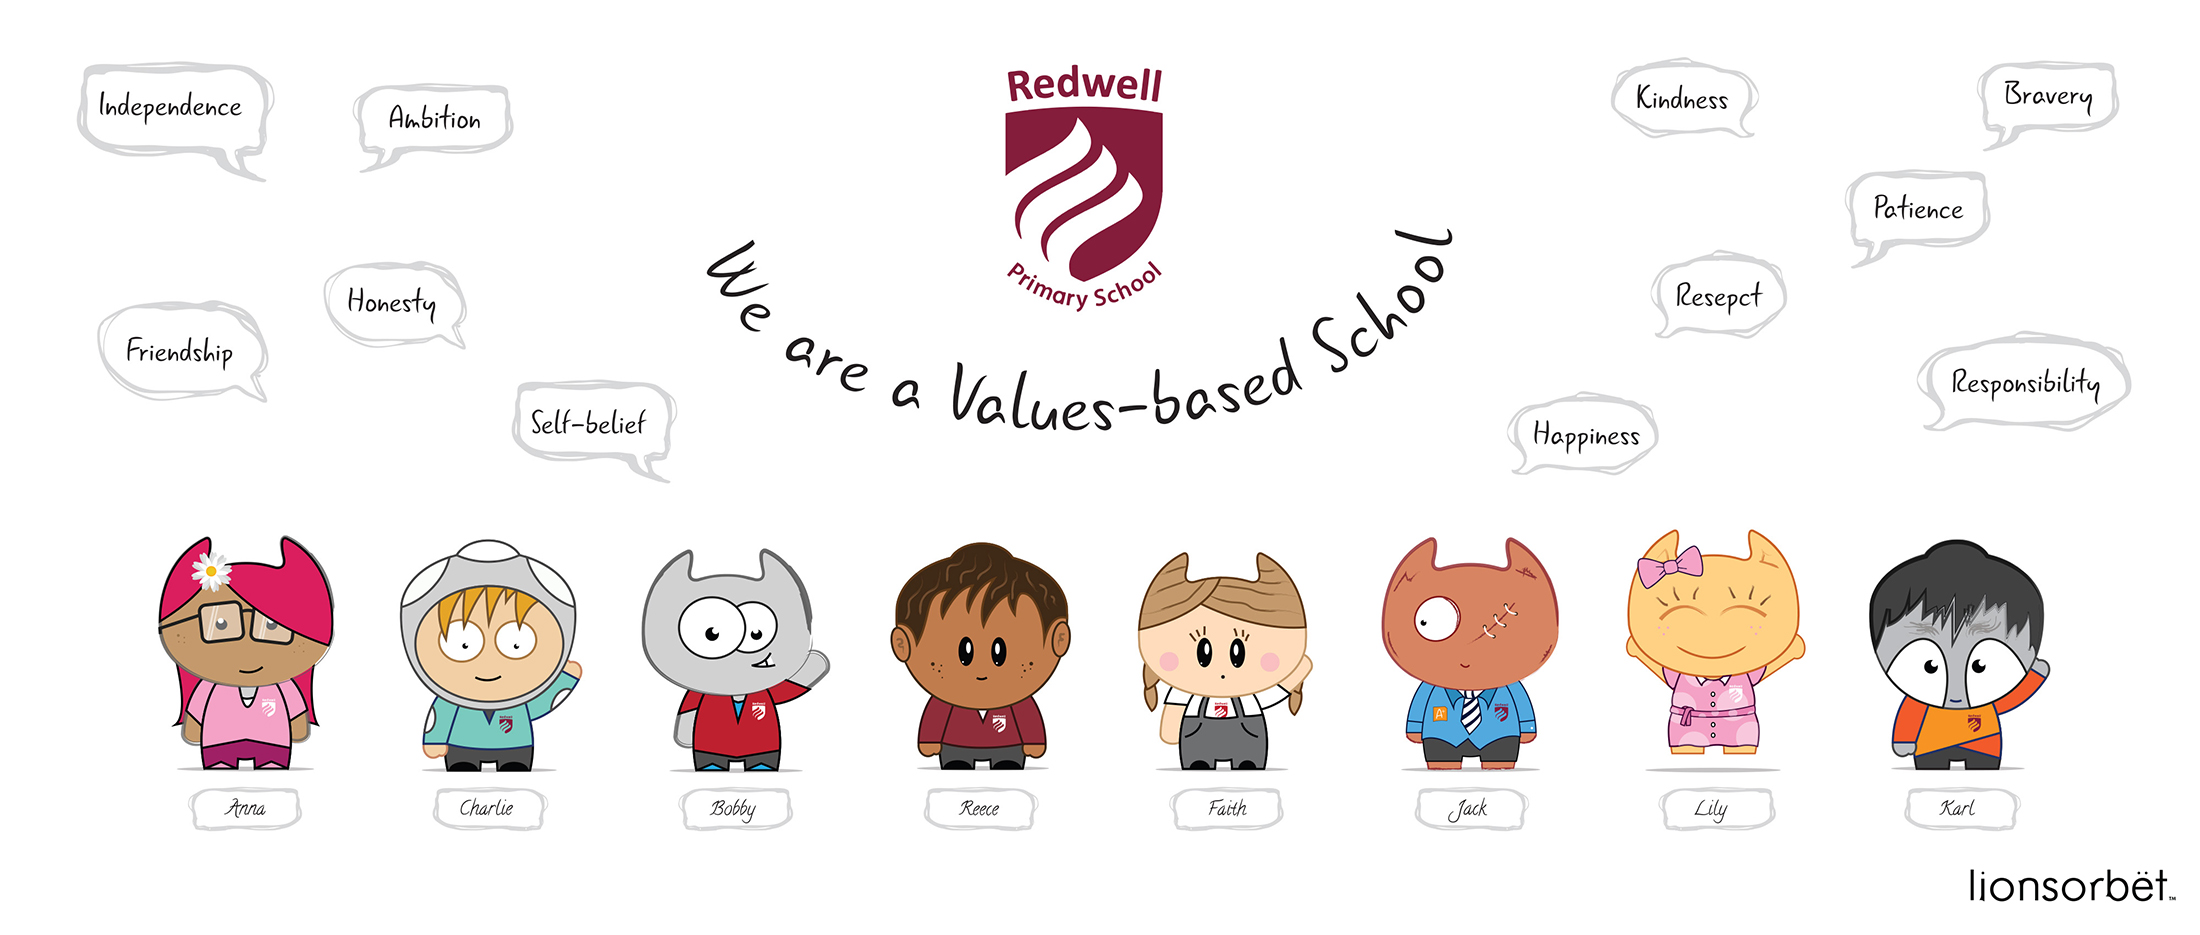 Redwell Primary School Values.jpg